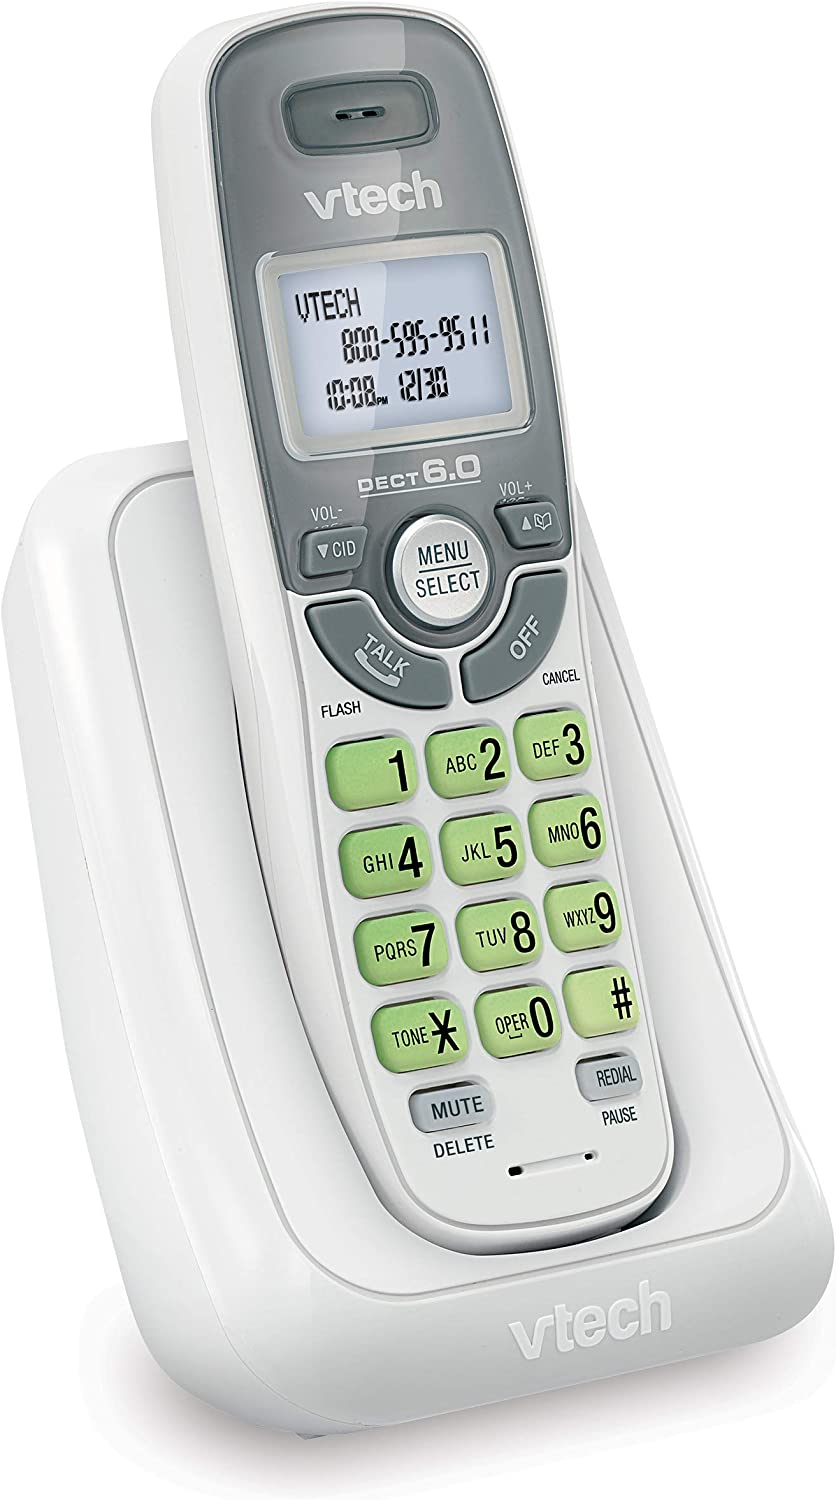 VTech CS6114 DECT 6.0 Cordless Phone with Caller ID/Call Waiting, White/Grey with 1 Handset, 3.50 x 3.50 x 7.00 Inches